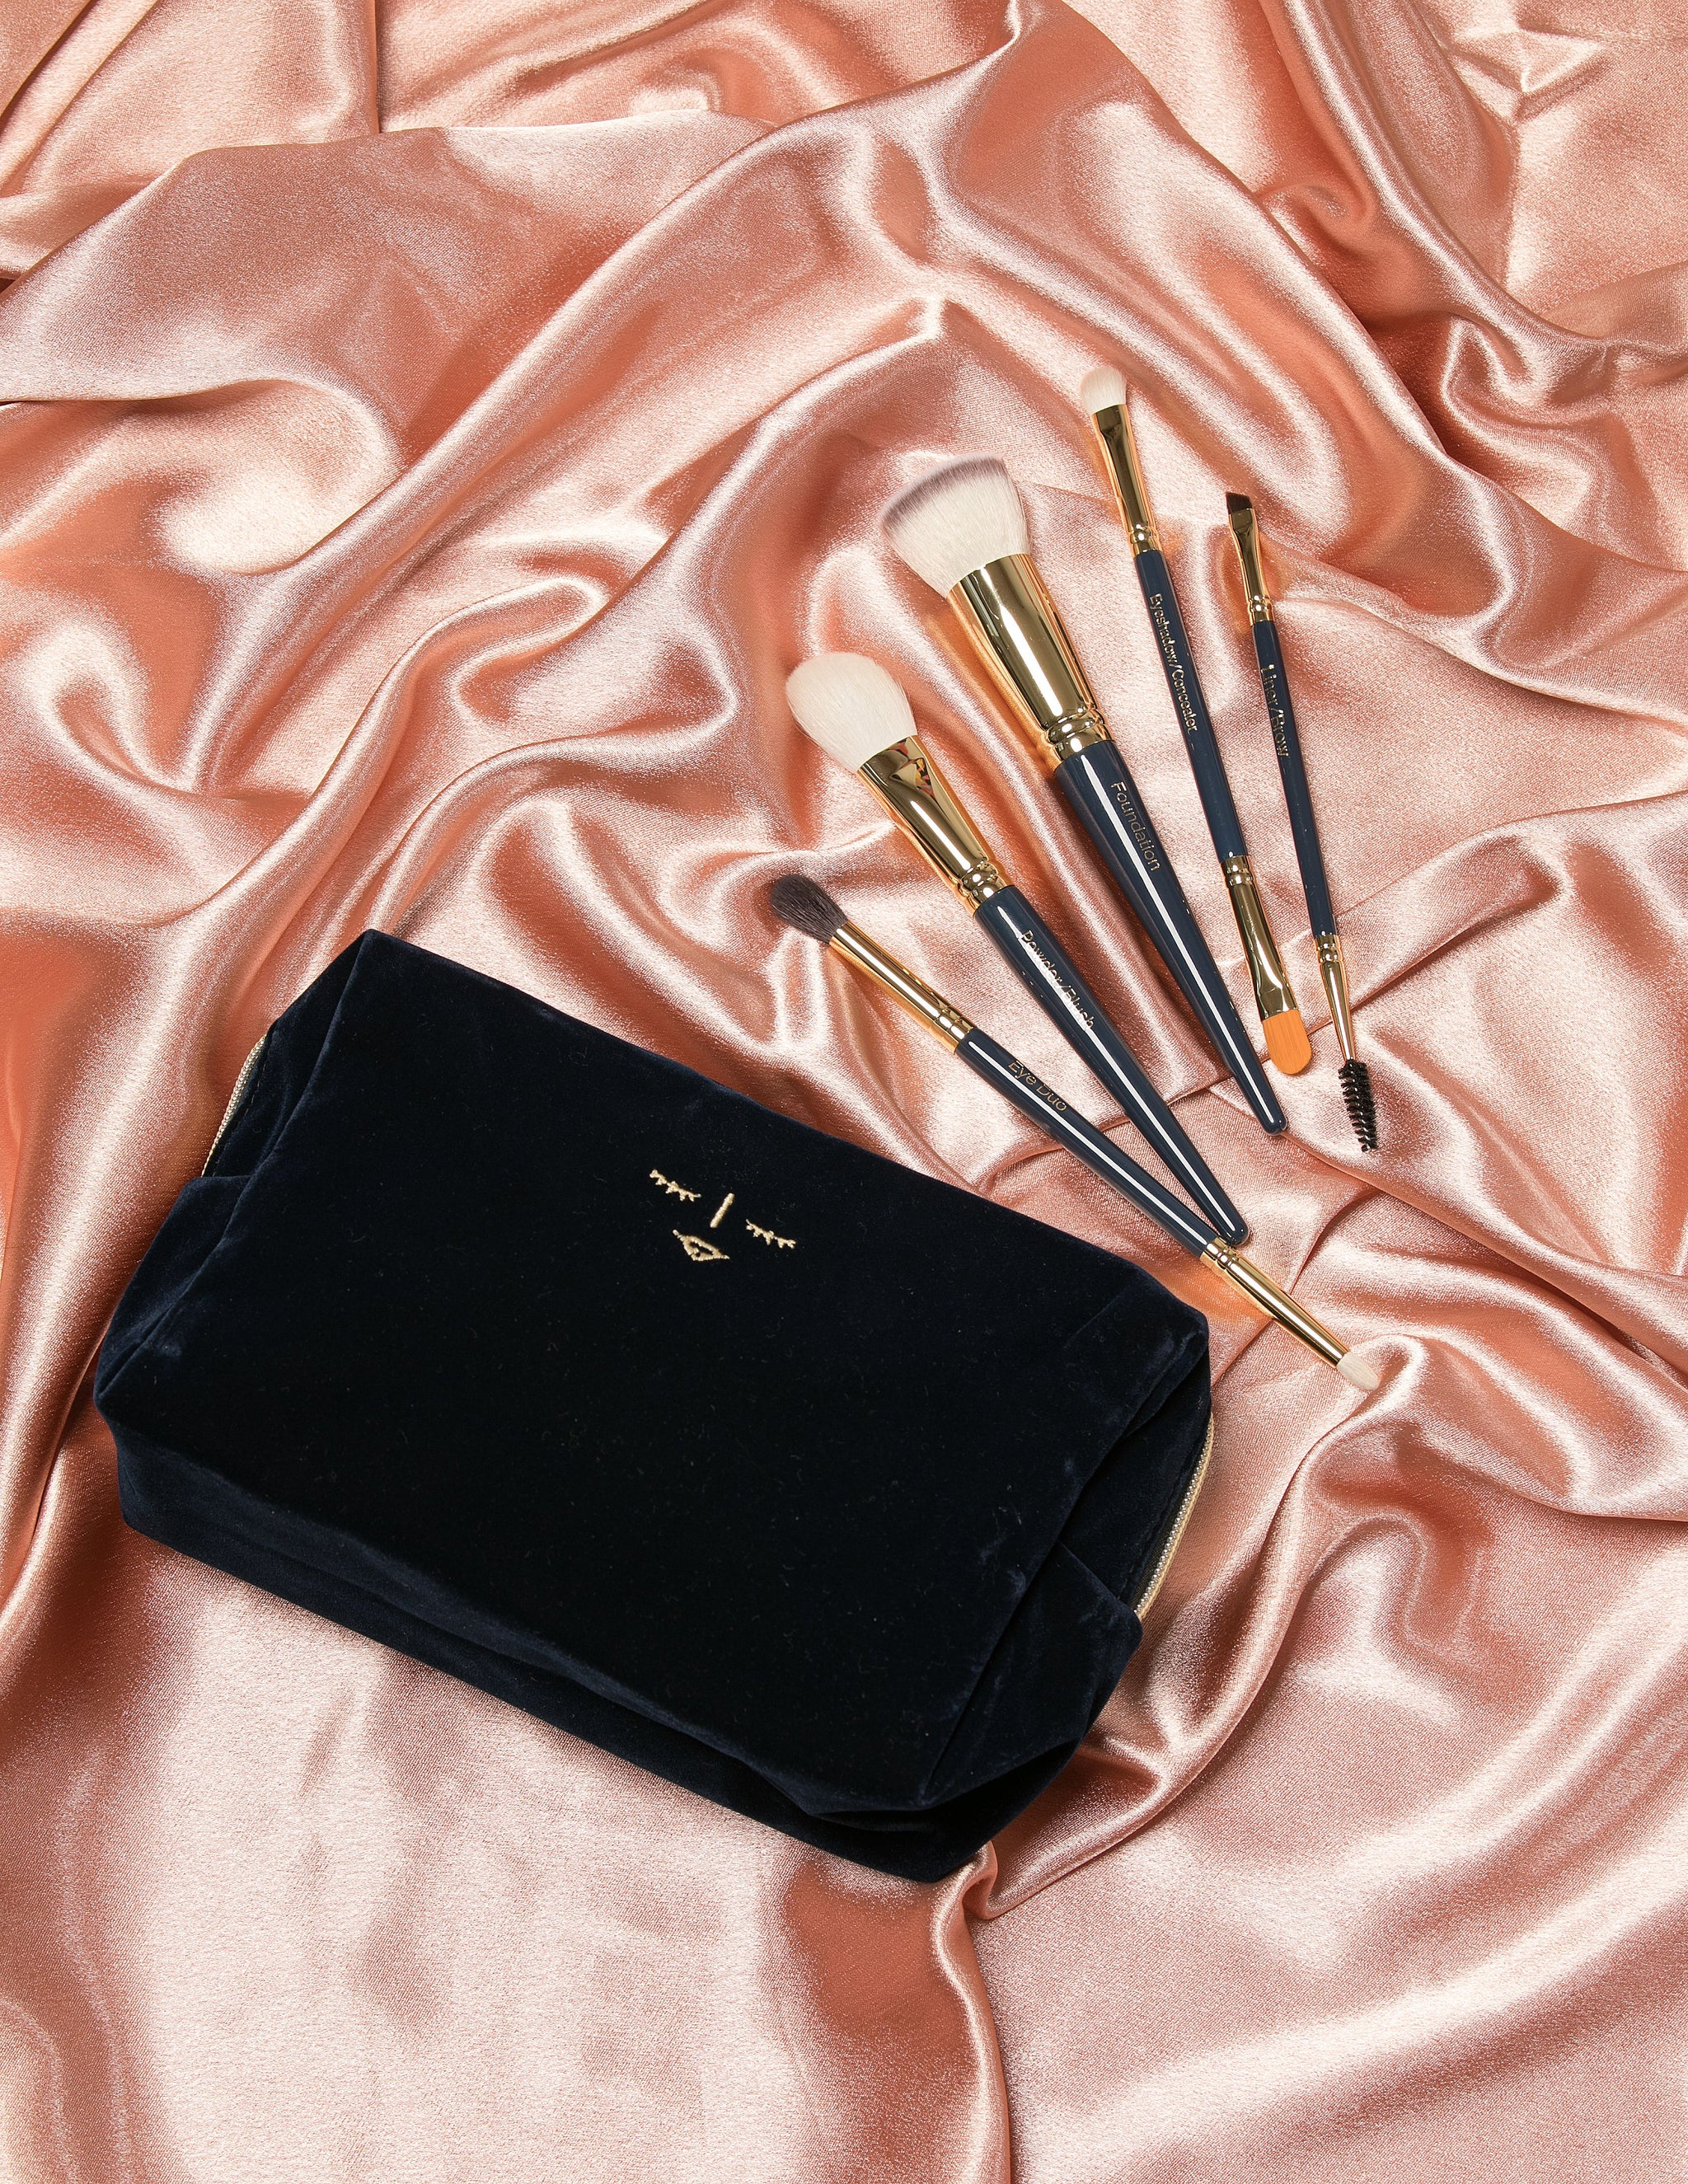 New SK Collection Velvet Make Up Bag